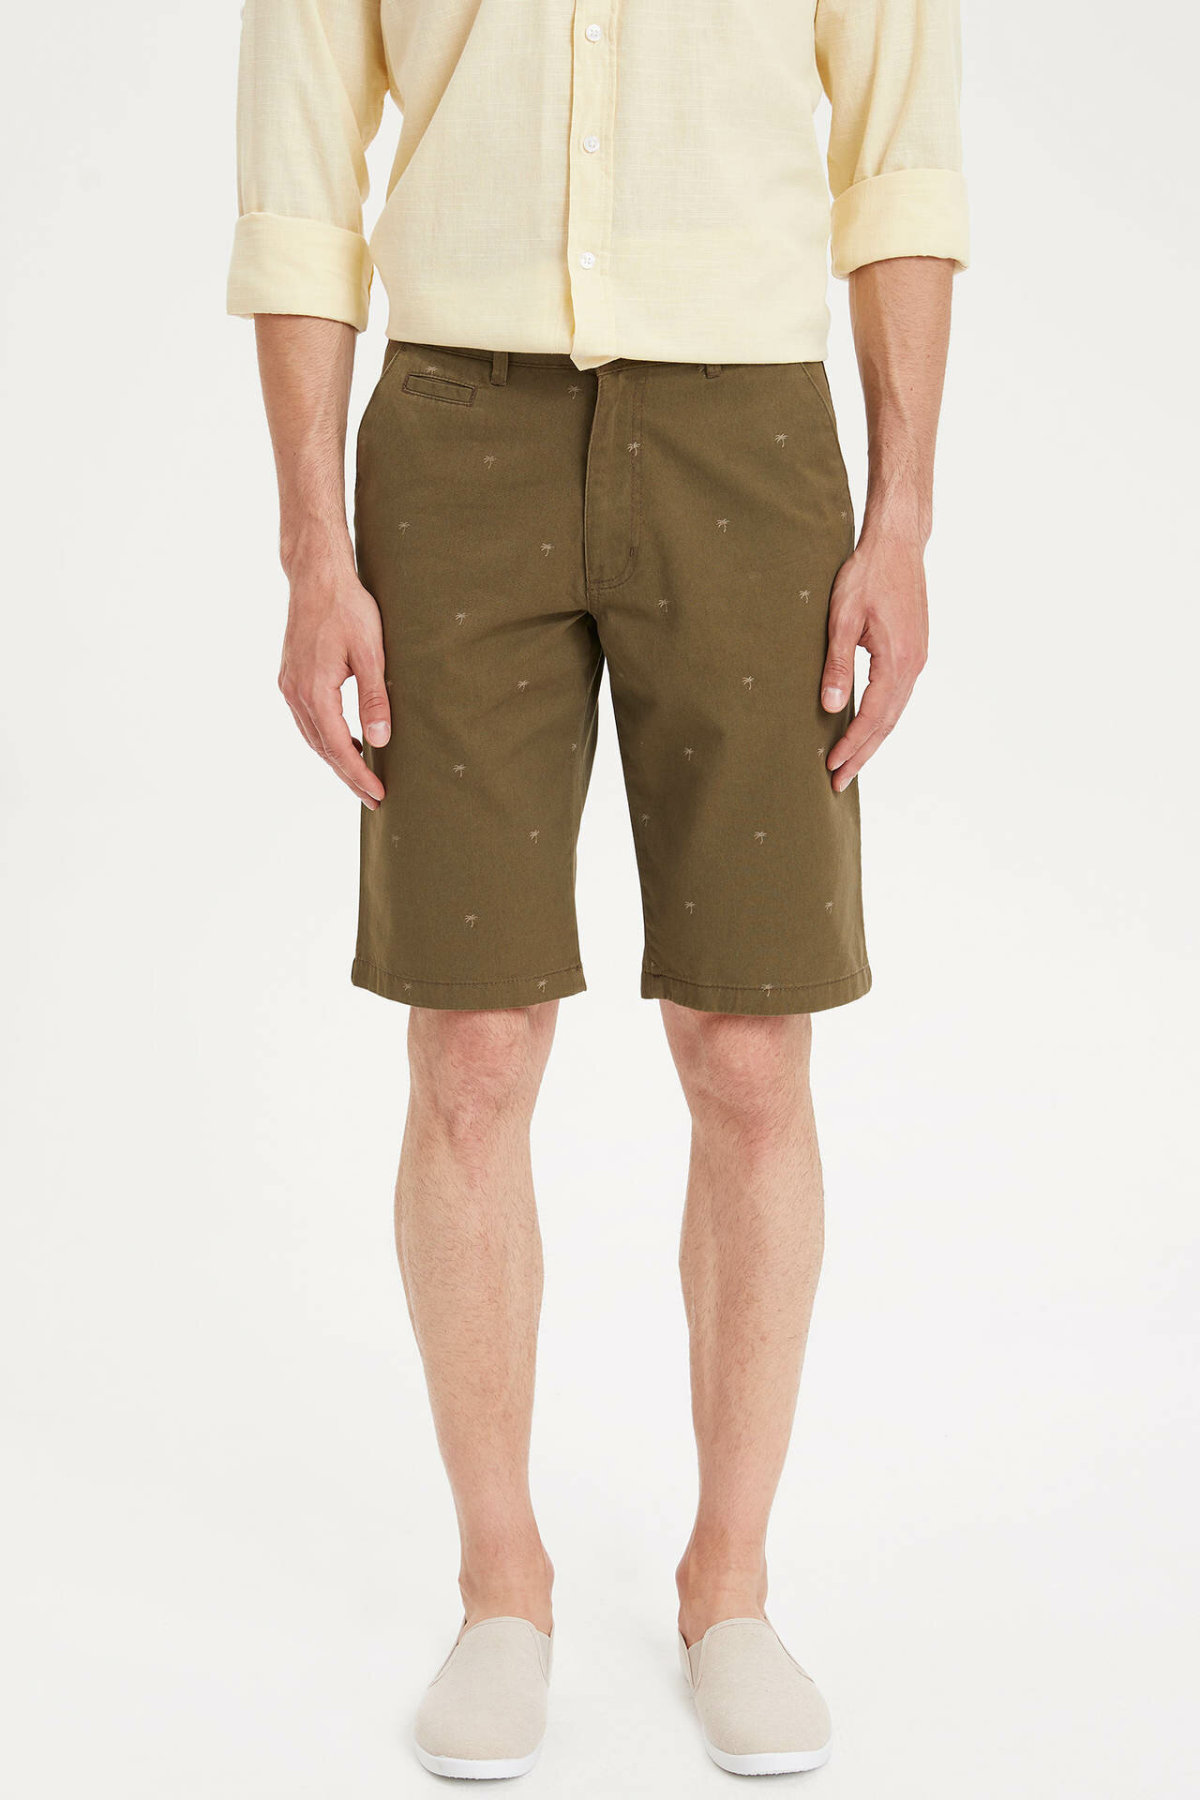 DeFacto Man Summer Khaki Color Casual Shorts Men Mid-waist Losoe Short Bottoms Male Shorts-K6967AZ19SM